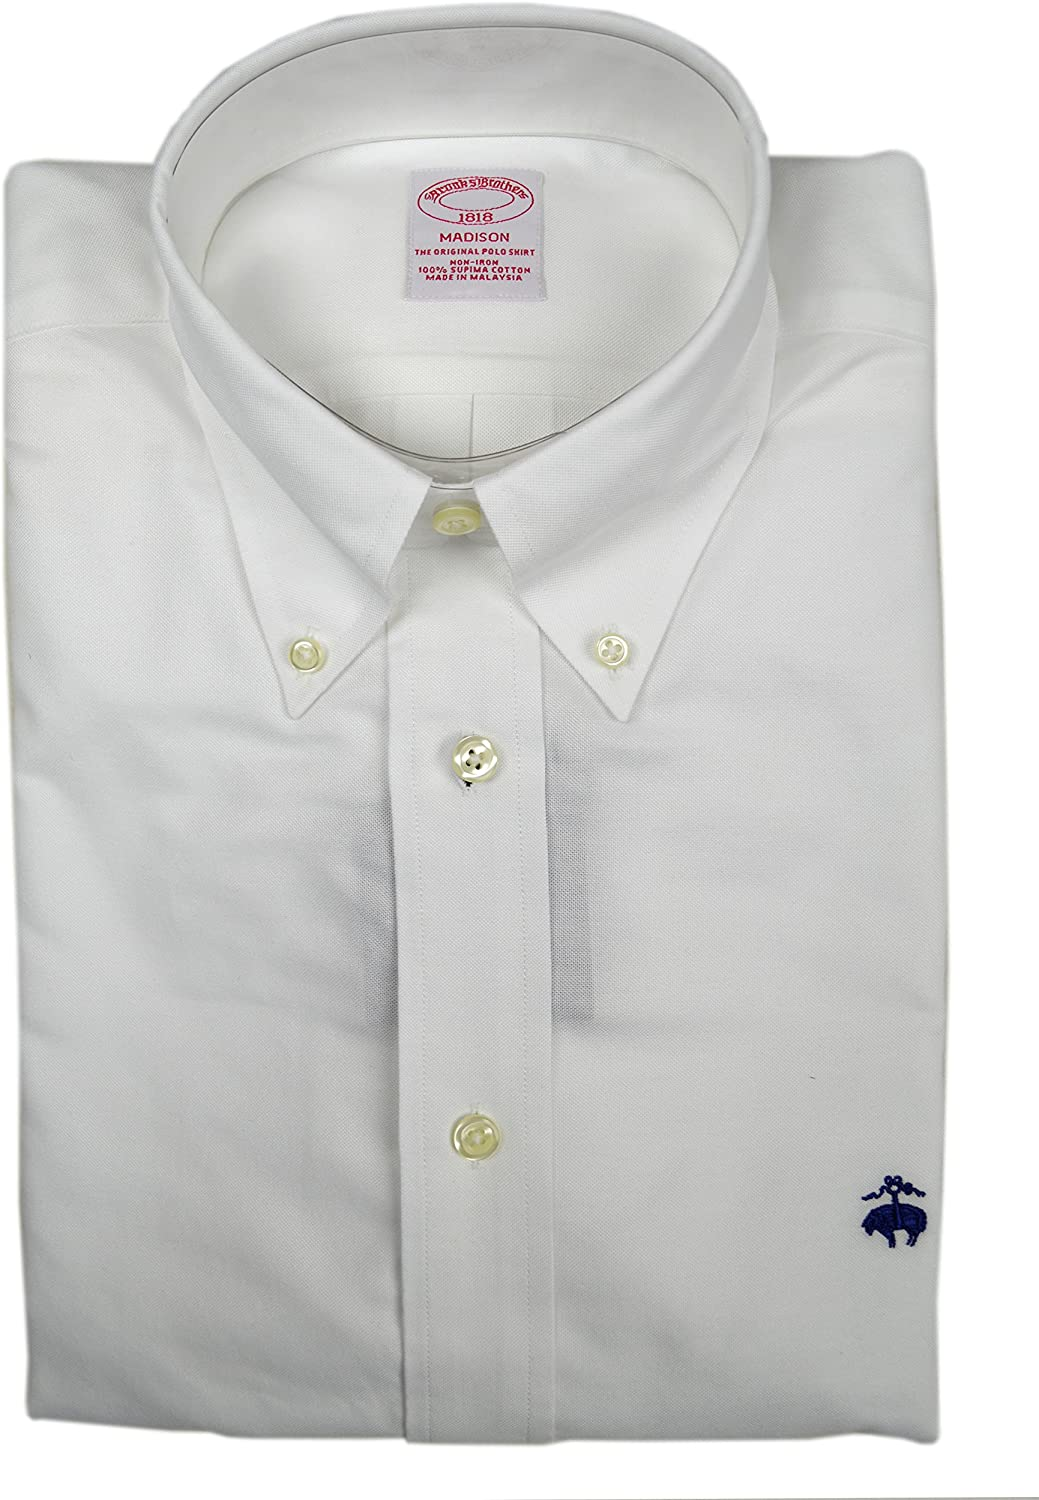 Brooks Brothers Men's Madison Classic Fit Supima Cotton Button Down Shirt White